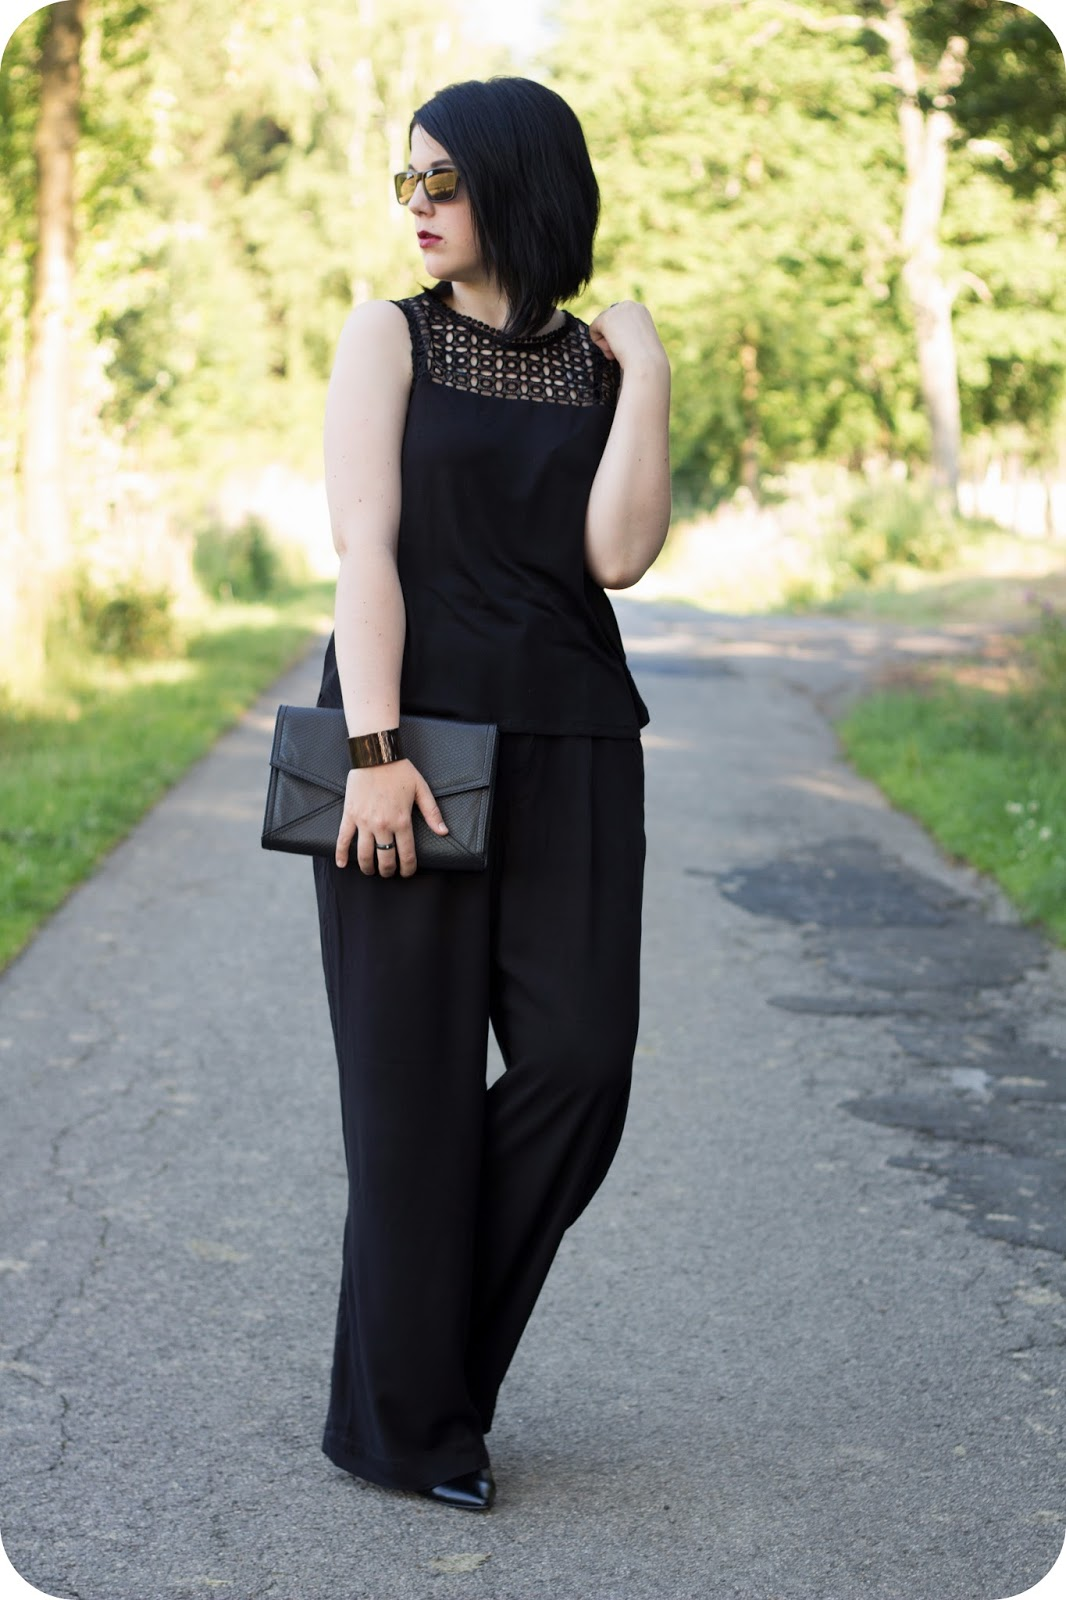 Heart and Soul for Fashion, Fashionblog, Modeblog, Stylediary, Mode, Fashion, Style, Styling, OOTD, Outfit, Inspiration, What I wear, WIW, Daily Look, Palazzo Pants, Lace top, All black look